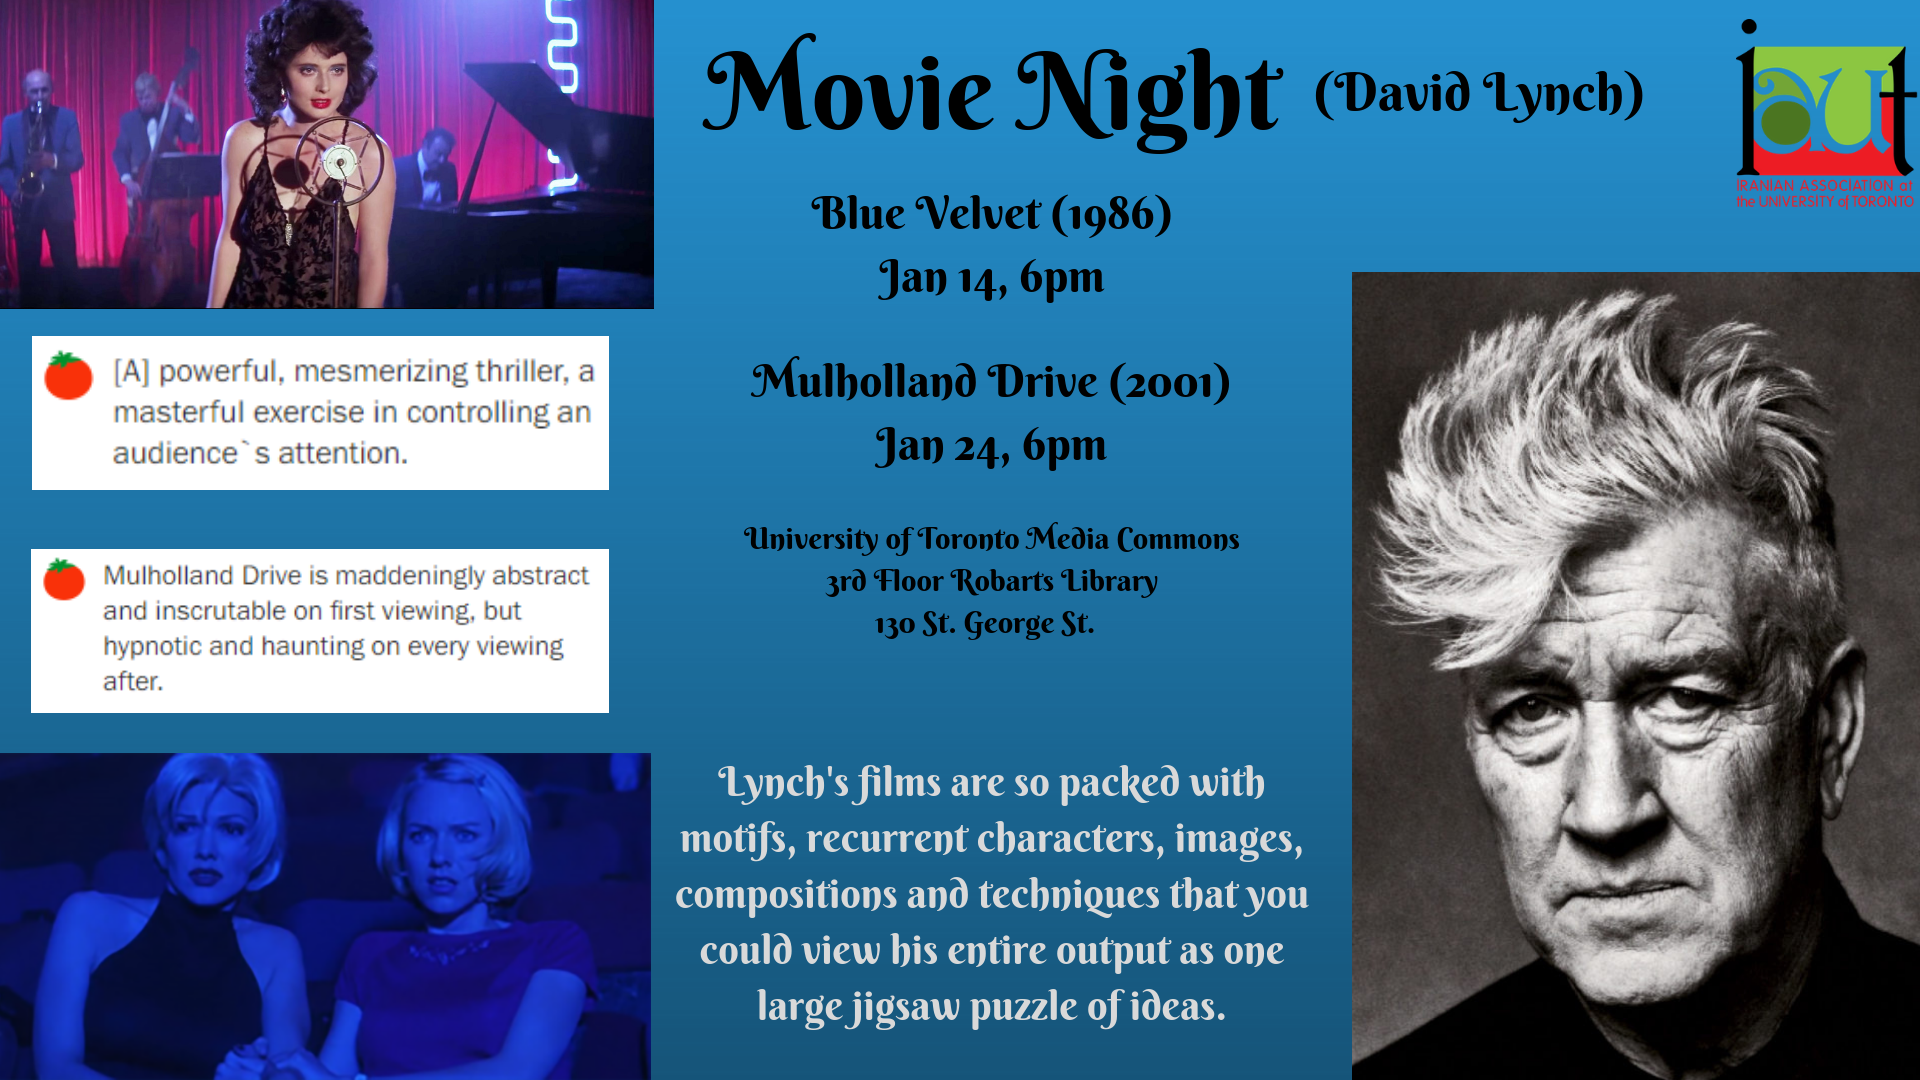 IAUT Movie Night: David Lynch Films